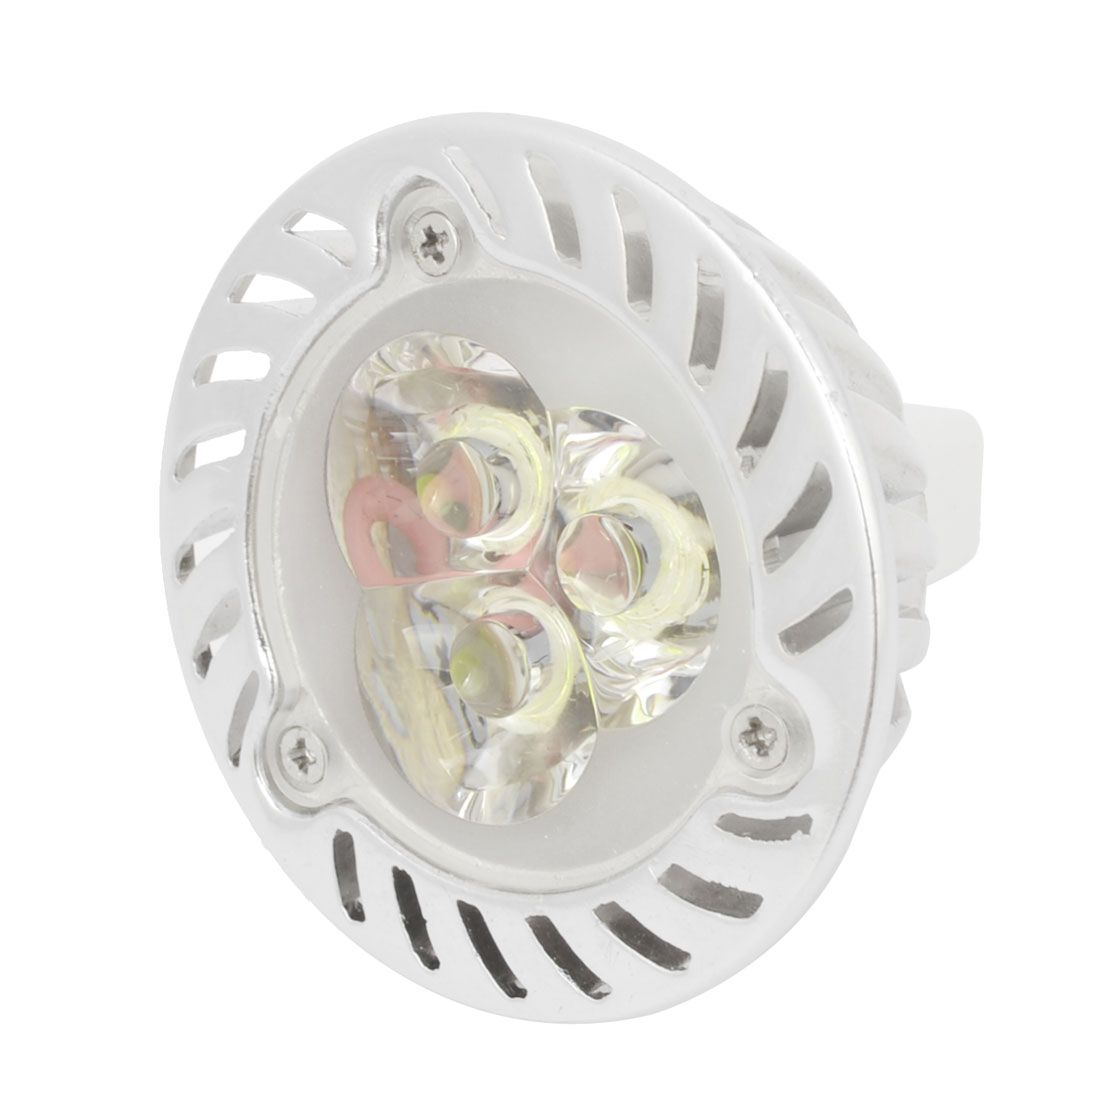 Pure White 3W 3 LEDs Ceiling Down Light Spotlight Bulb AC 85-265V